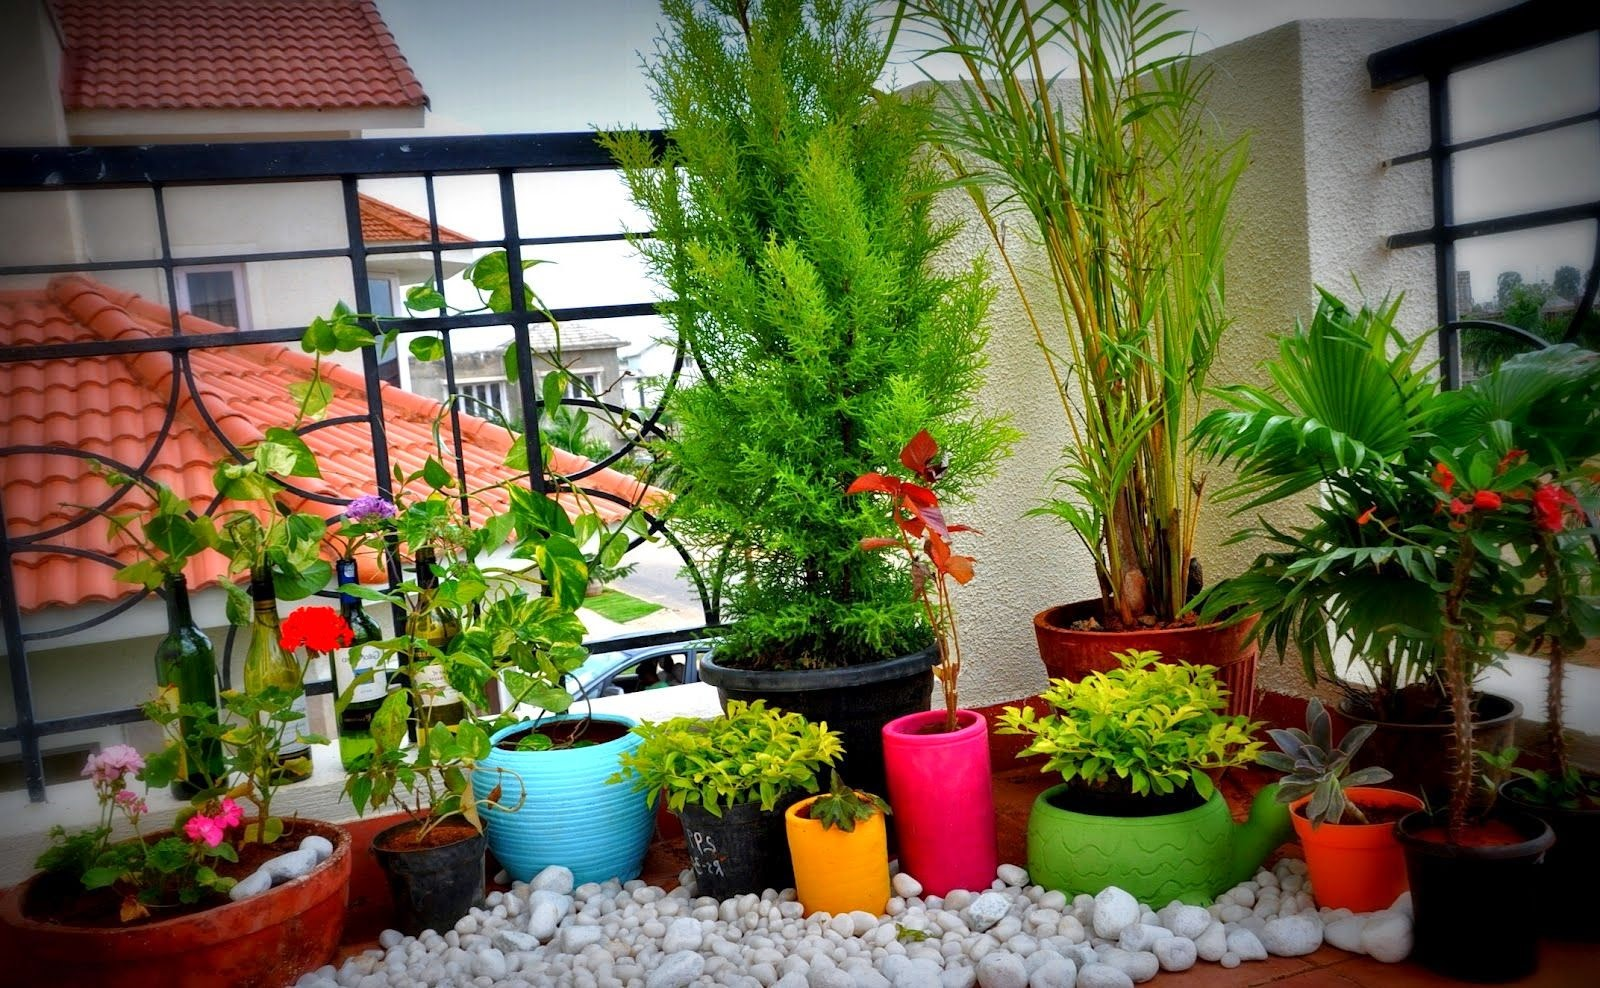 Balcony Gardening Idea